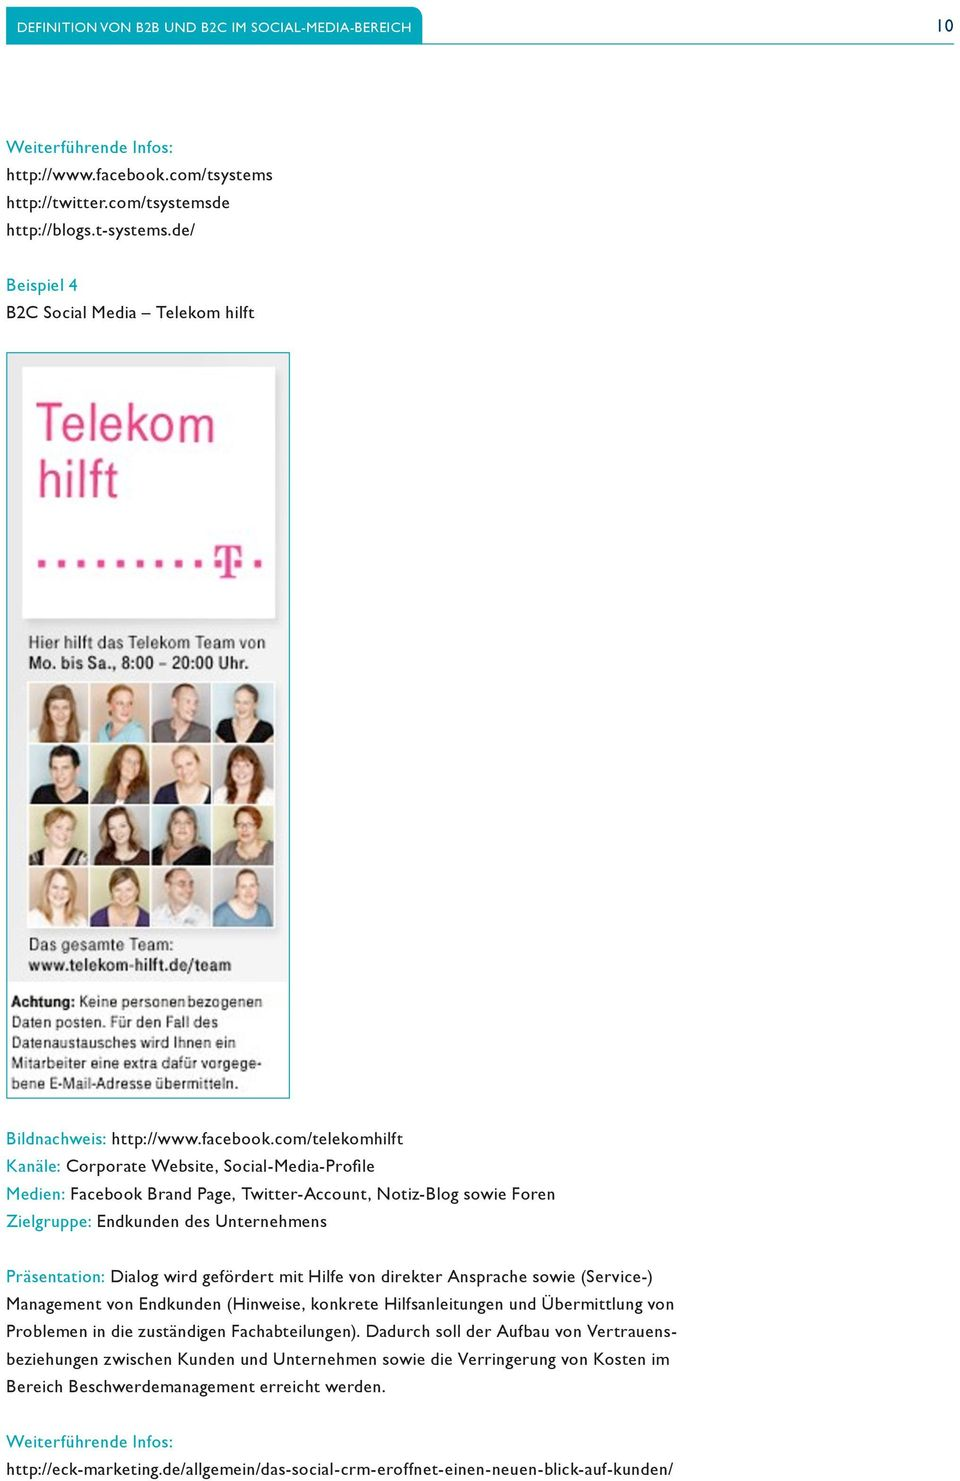 com/telekomhilft Kanäle: Corporate Website, Social-Media-Profile Medien: Facebook Brand Page, Twitter-Account, Notiz-Blog sowie Foren Zielgruppe: Endkunden des Unternehmens Präsentation: Dialog wird